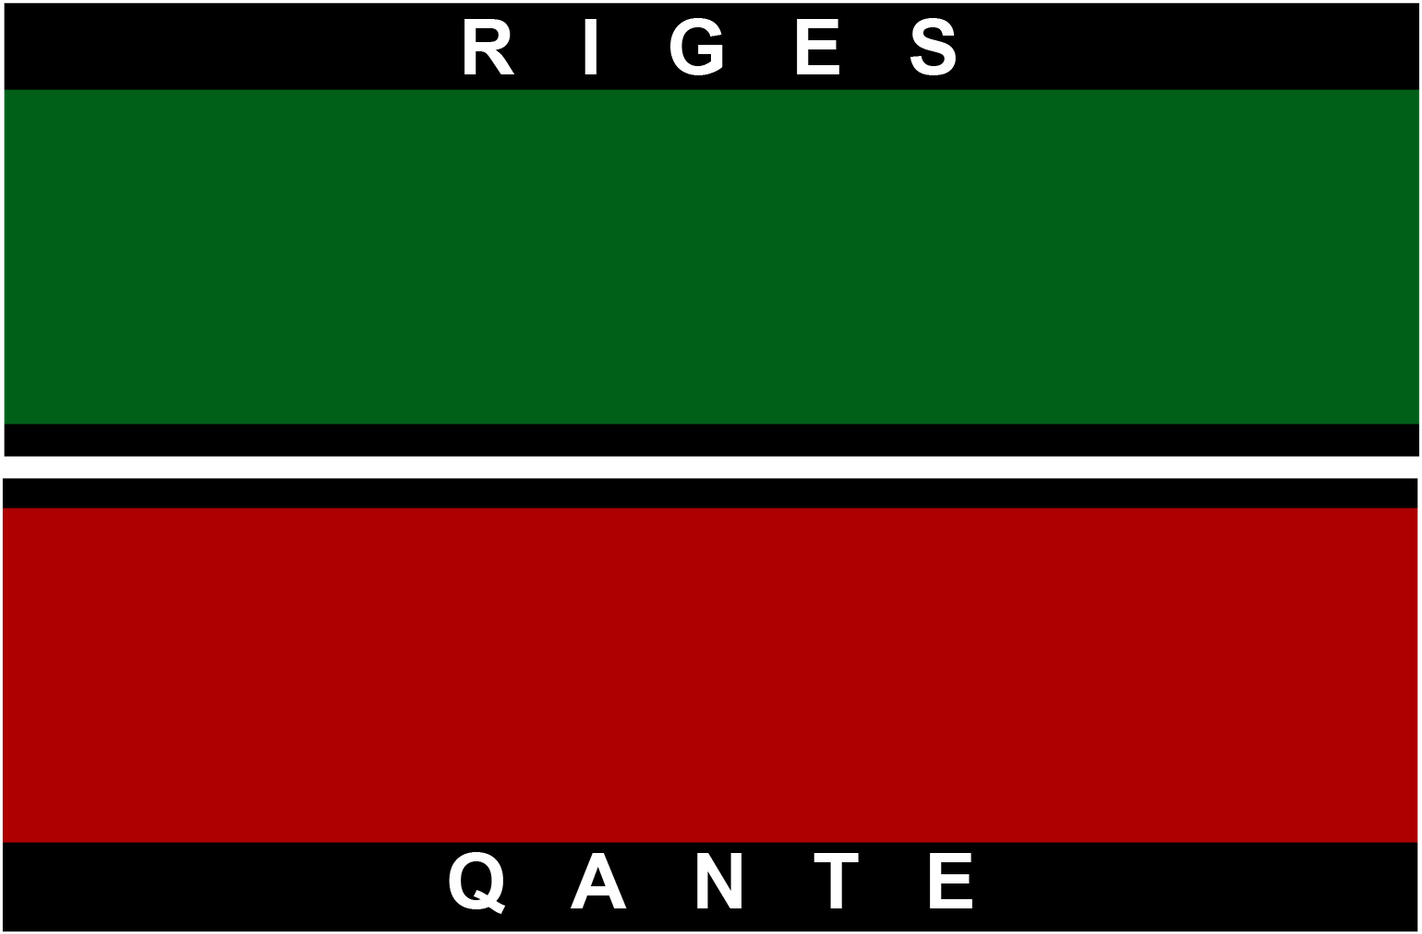 Riges Qante